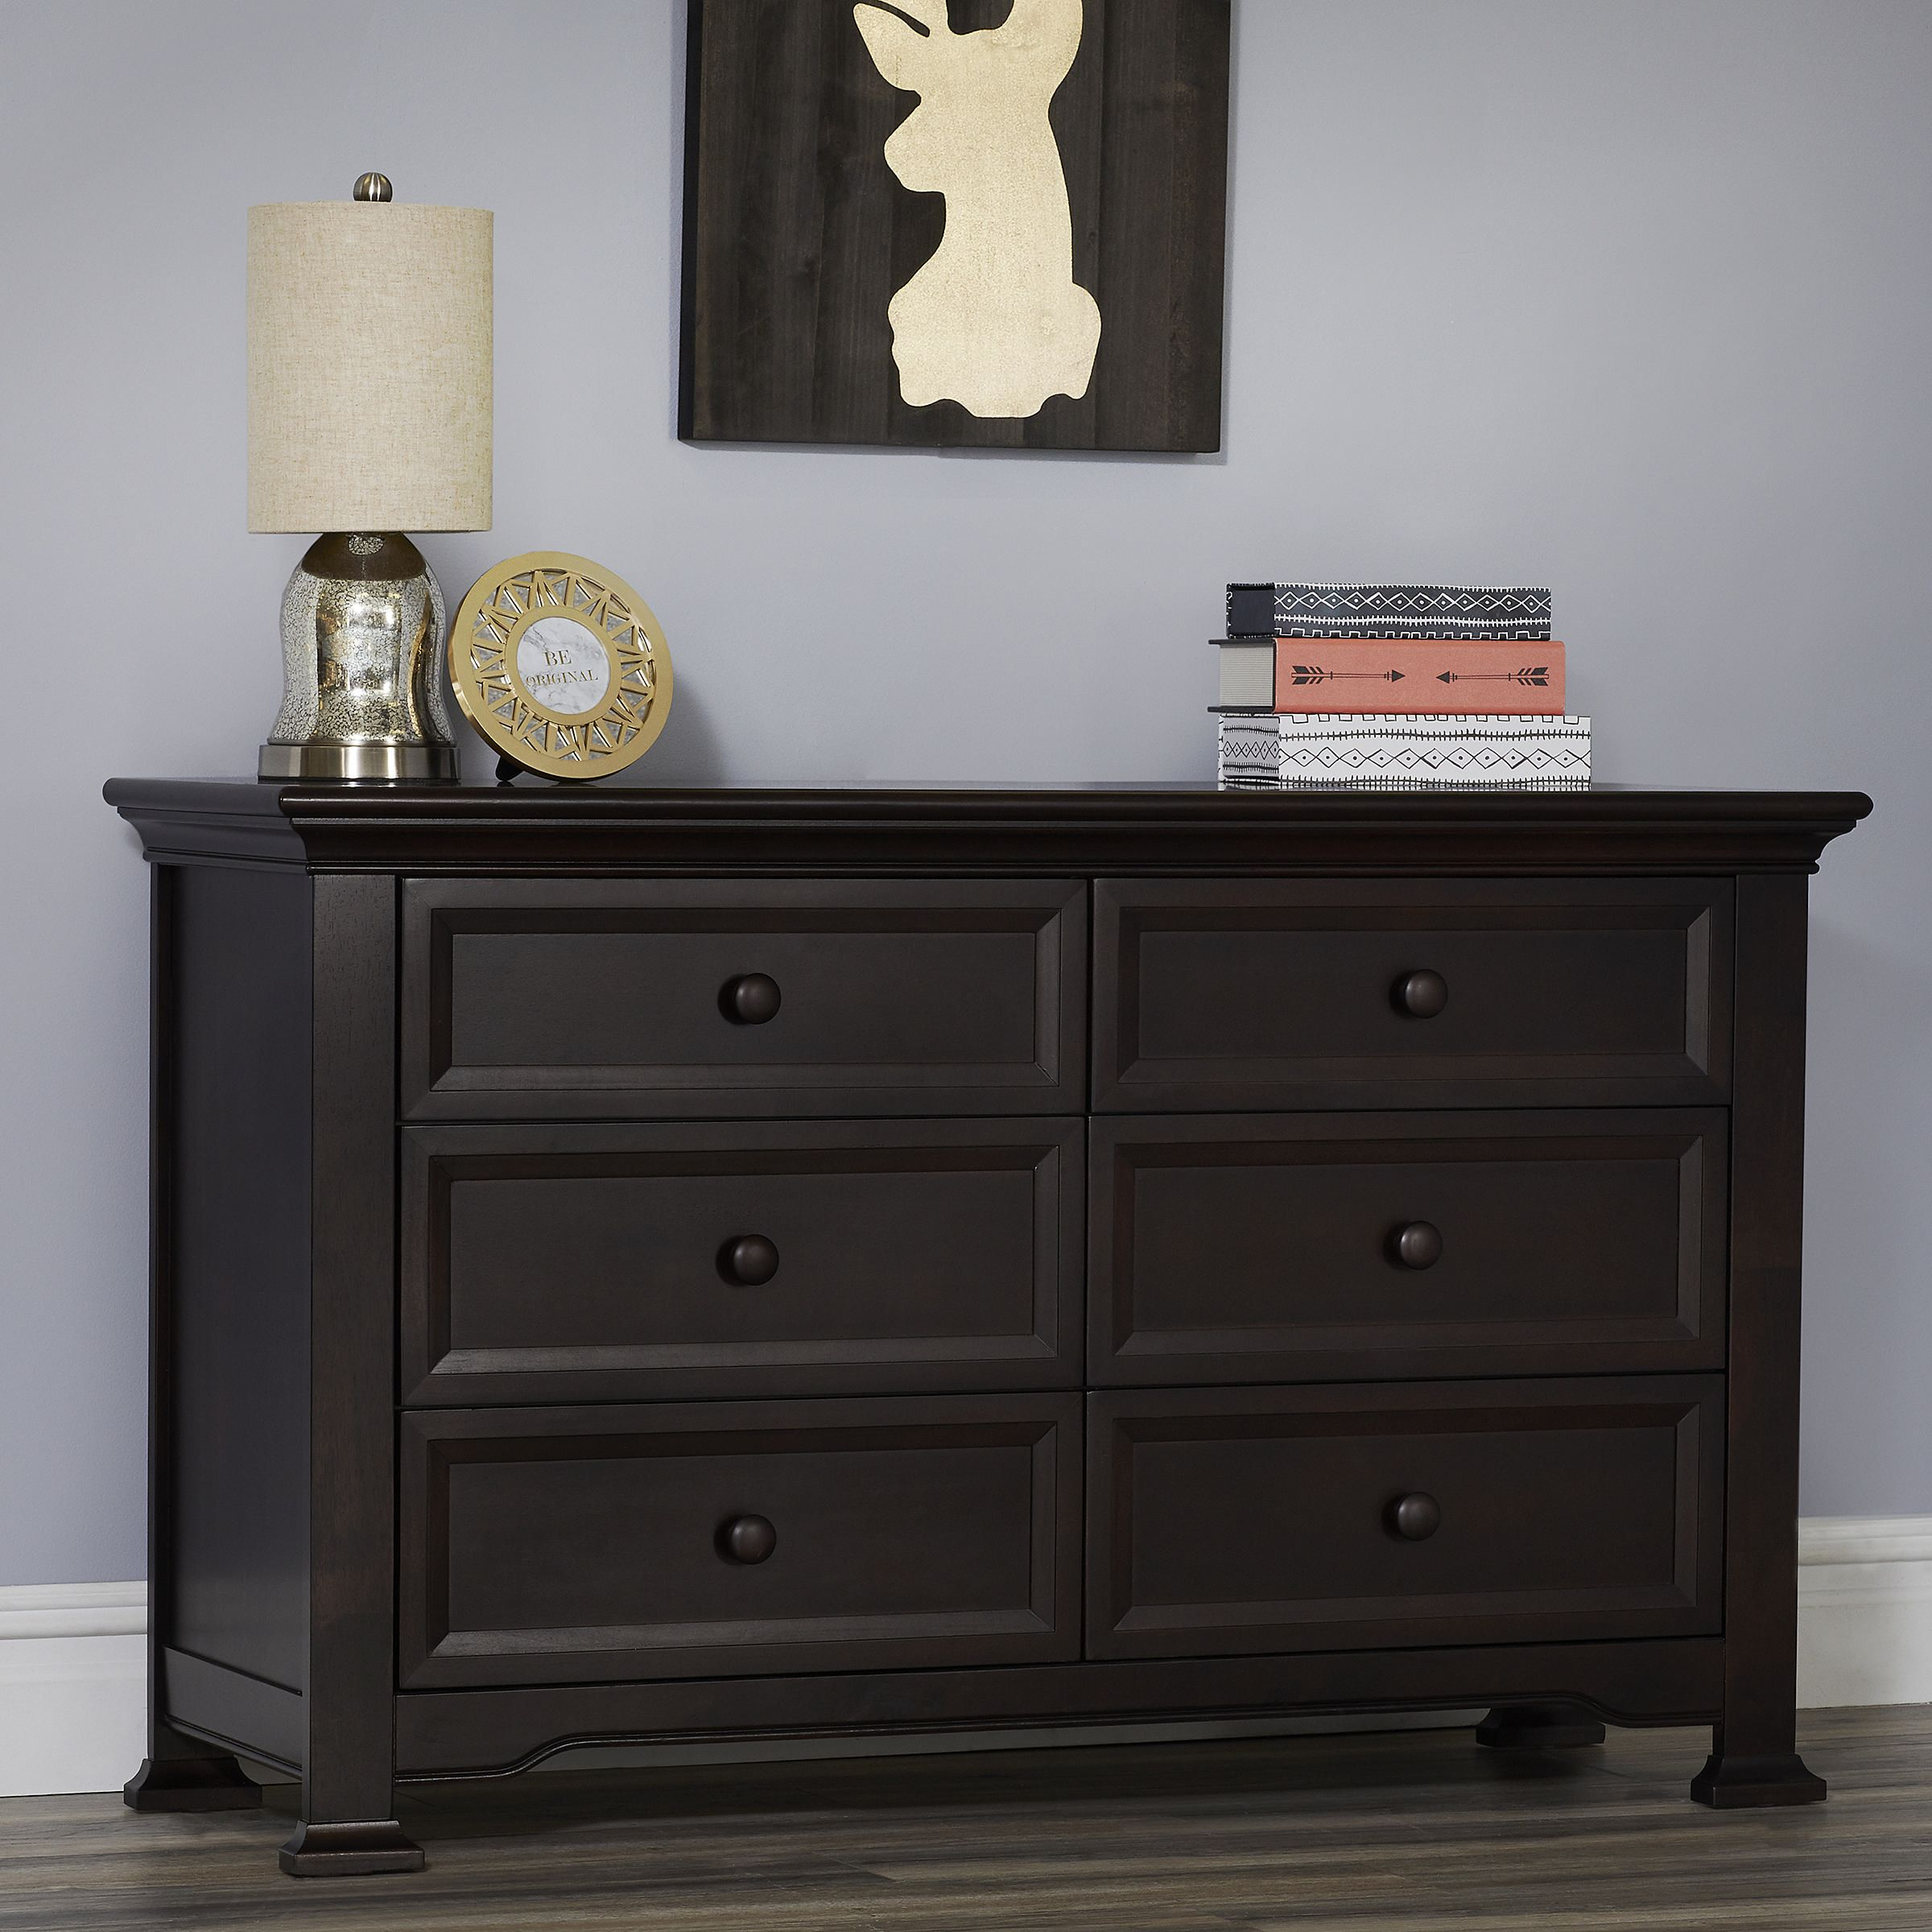 bolton next to and product recalls dressers previous due dresser us r furniture serious tip over toys